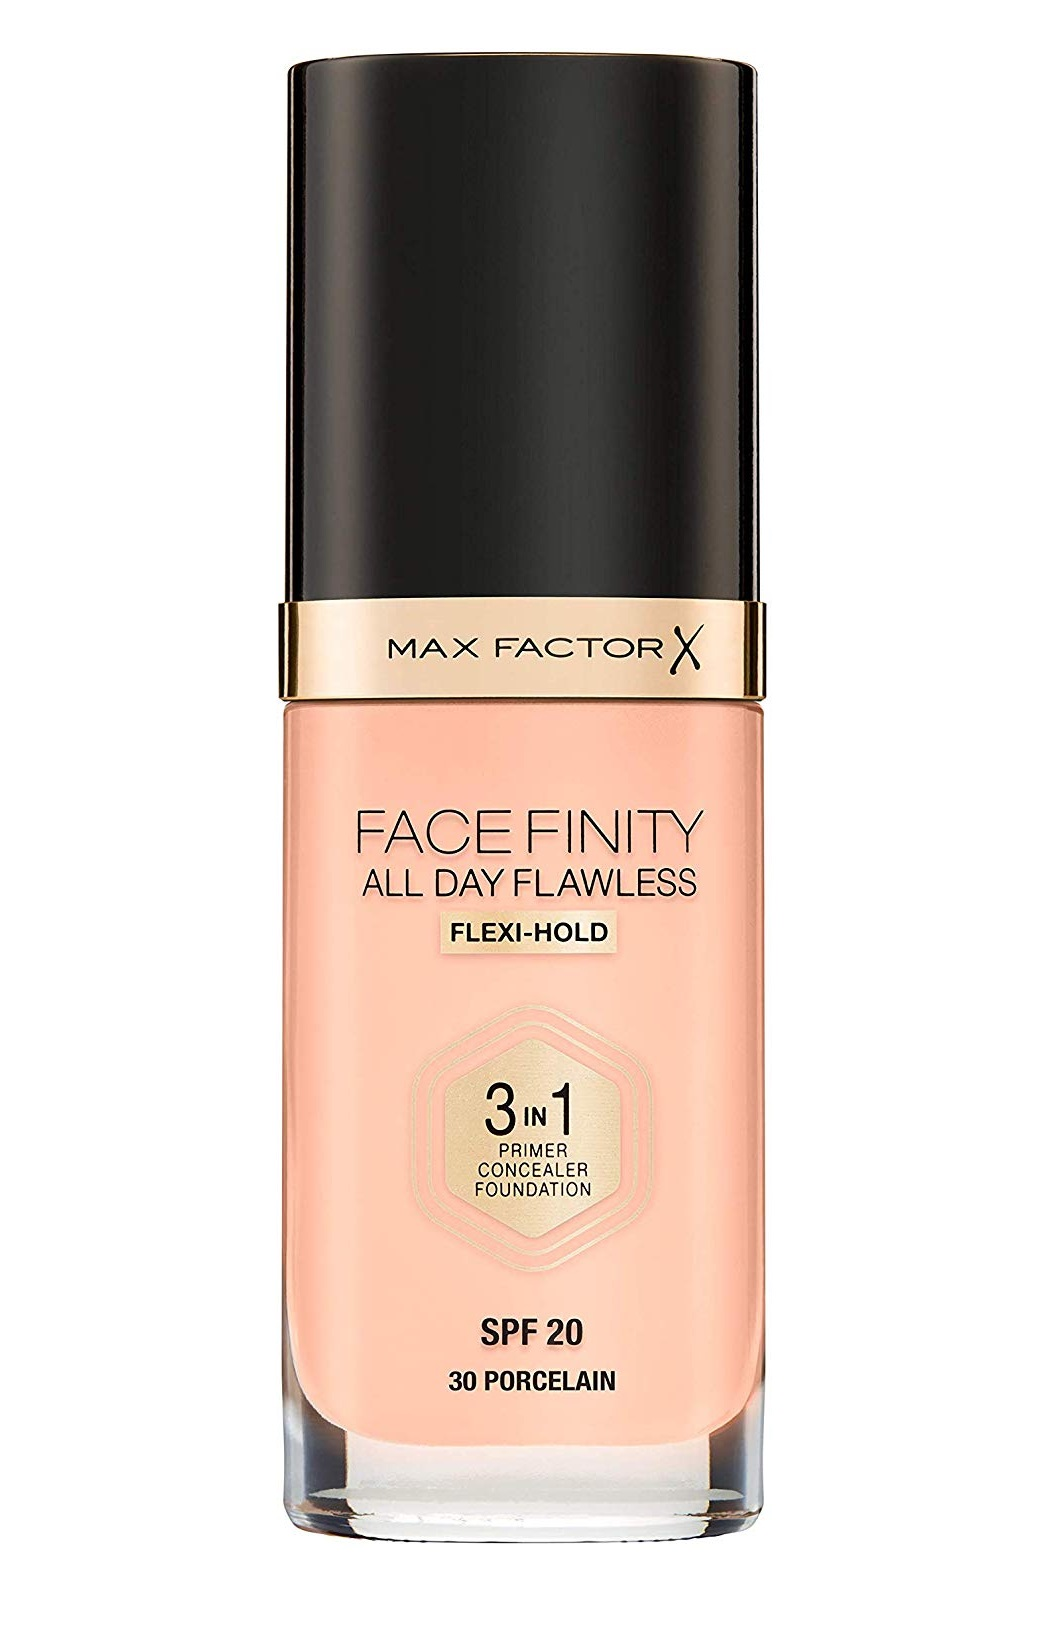 Max Factor FaceFinity All Day Flawless 3 in 1 Foundation, Primer and Concealer, SPF 20 Porcelain 30 - Walmart.com